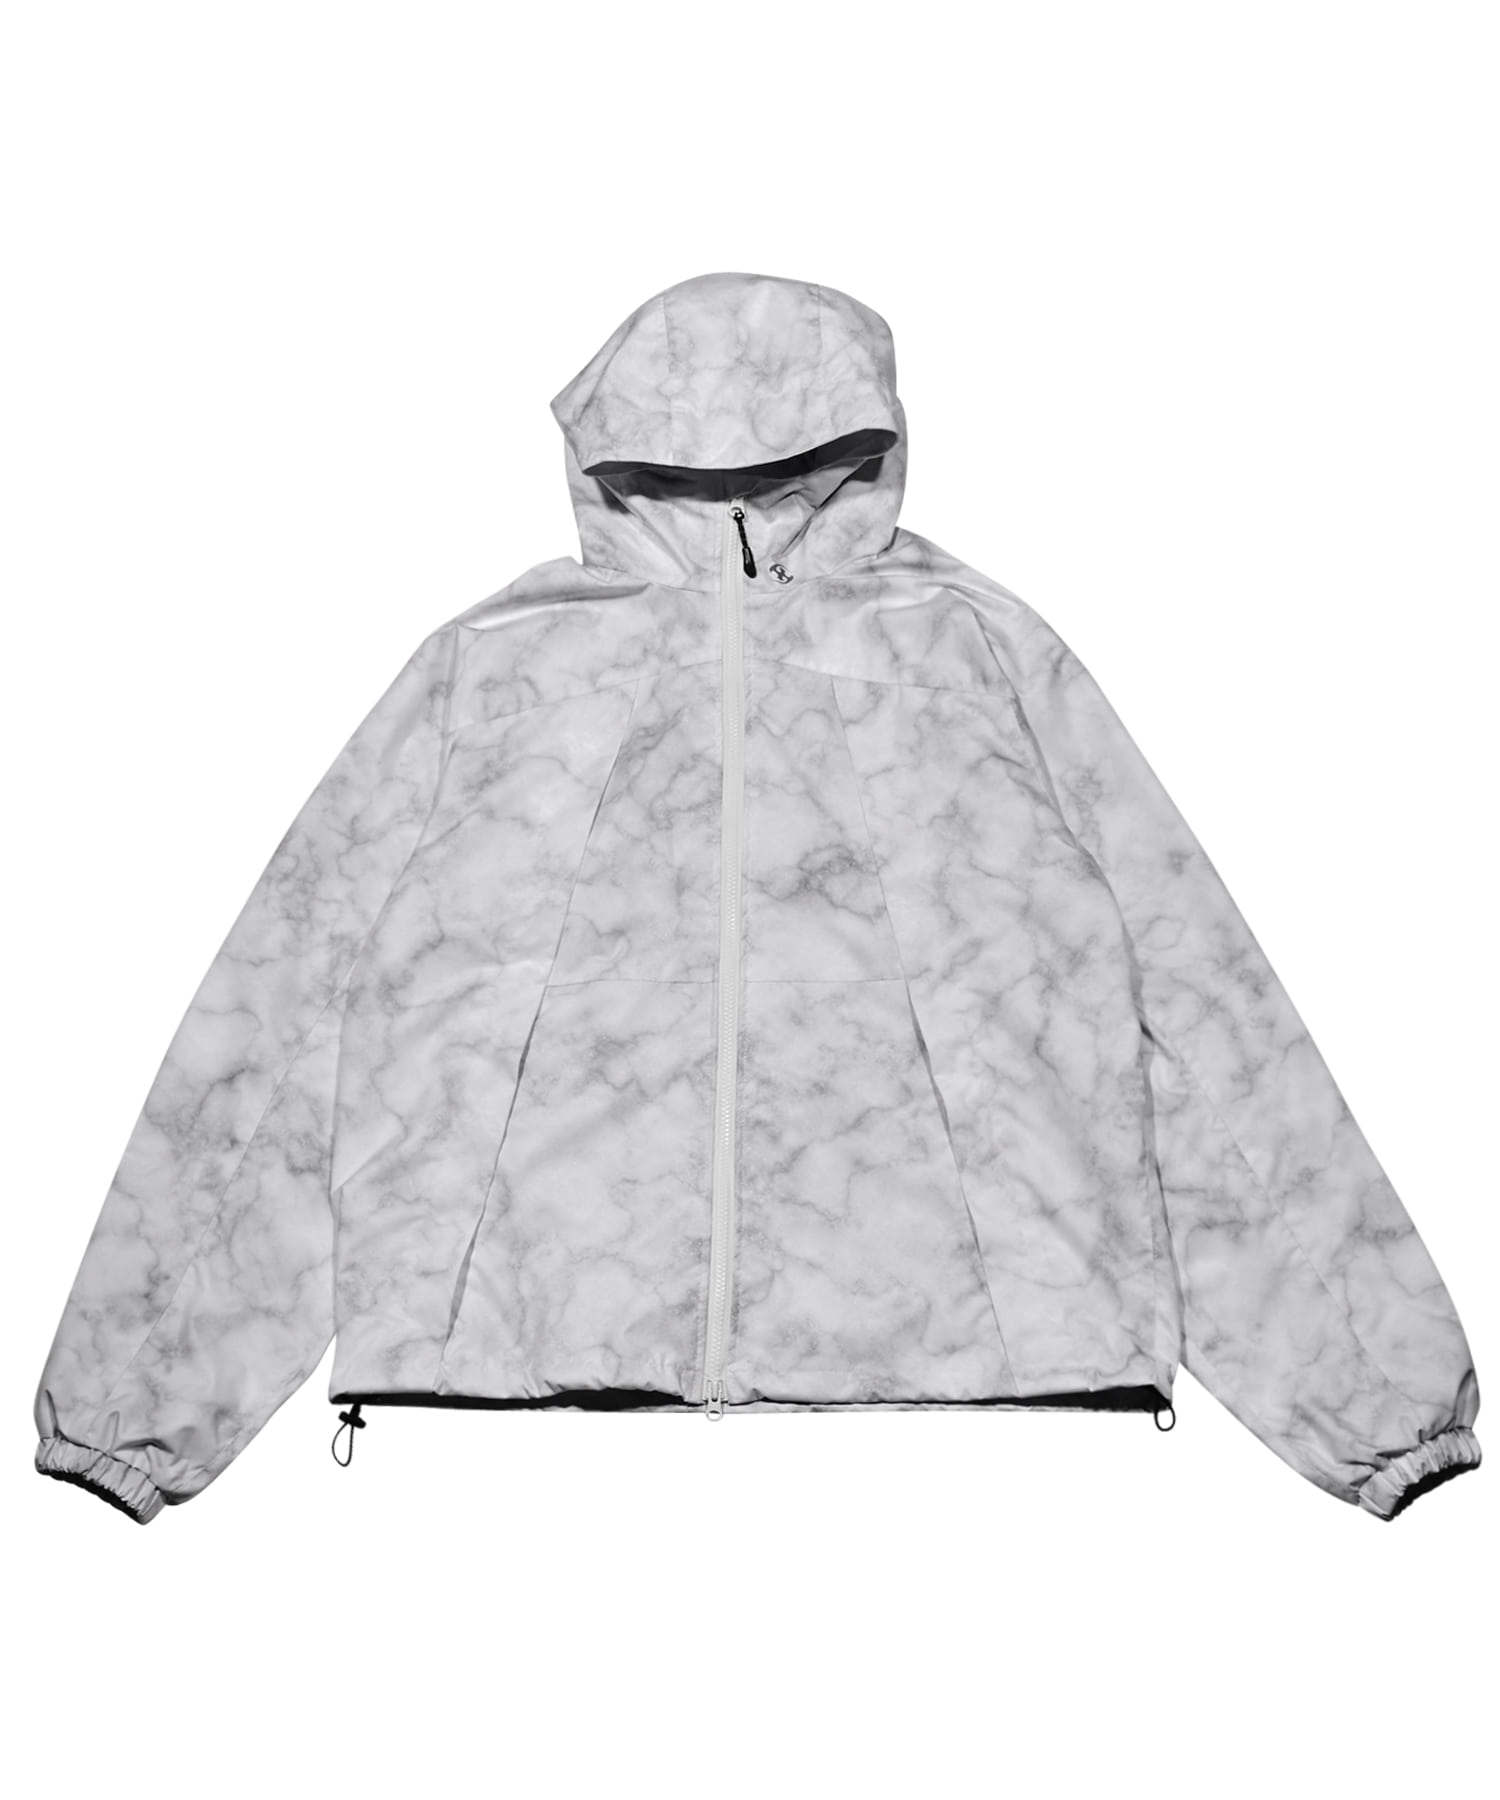 WIND BLOCK JACKET MARBLE